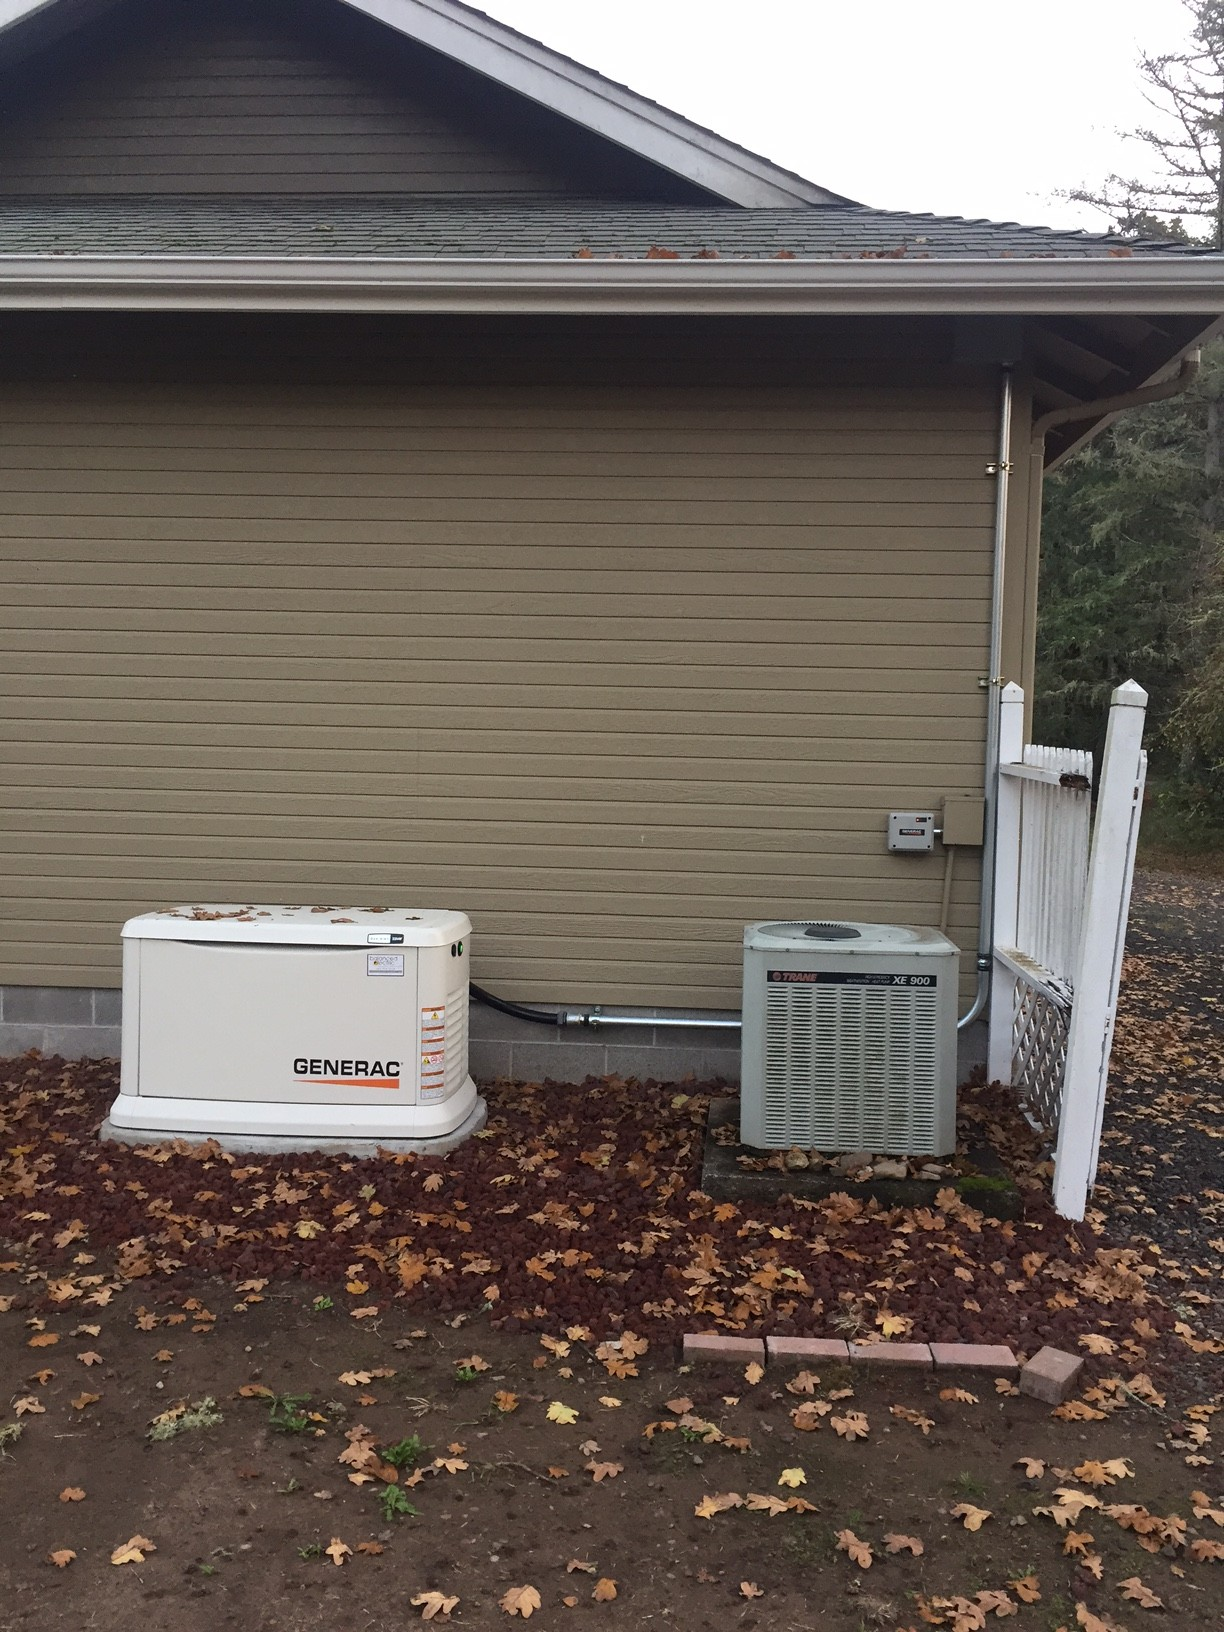 hight resolution of this generator was installed by the pump house and the service was upgraded from a zinsco meter main the house and the well are all on generator backup